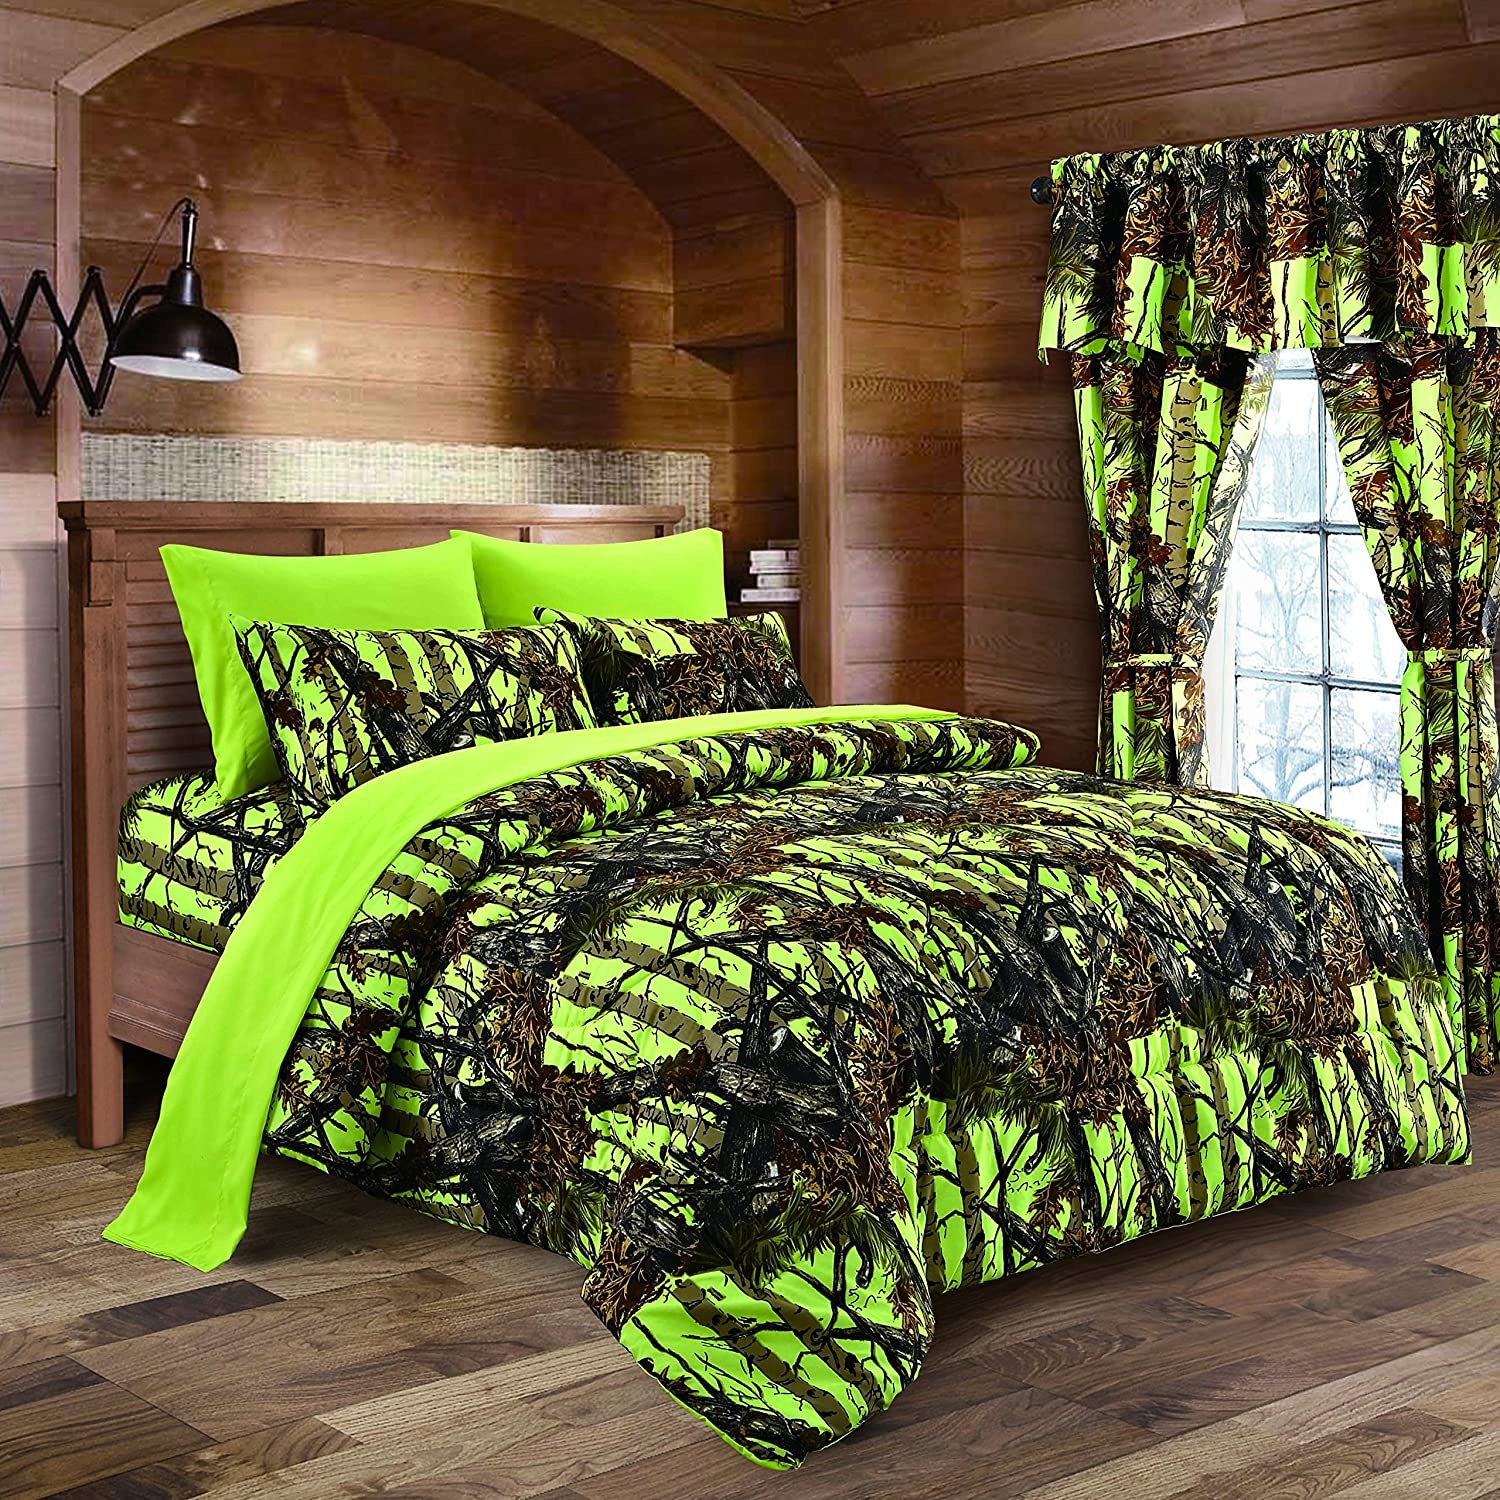 The Woods Lime Green Camouflage Full 8pc Premium Luxury Comforter